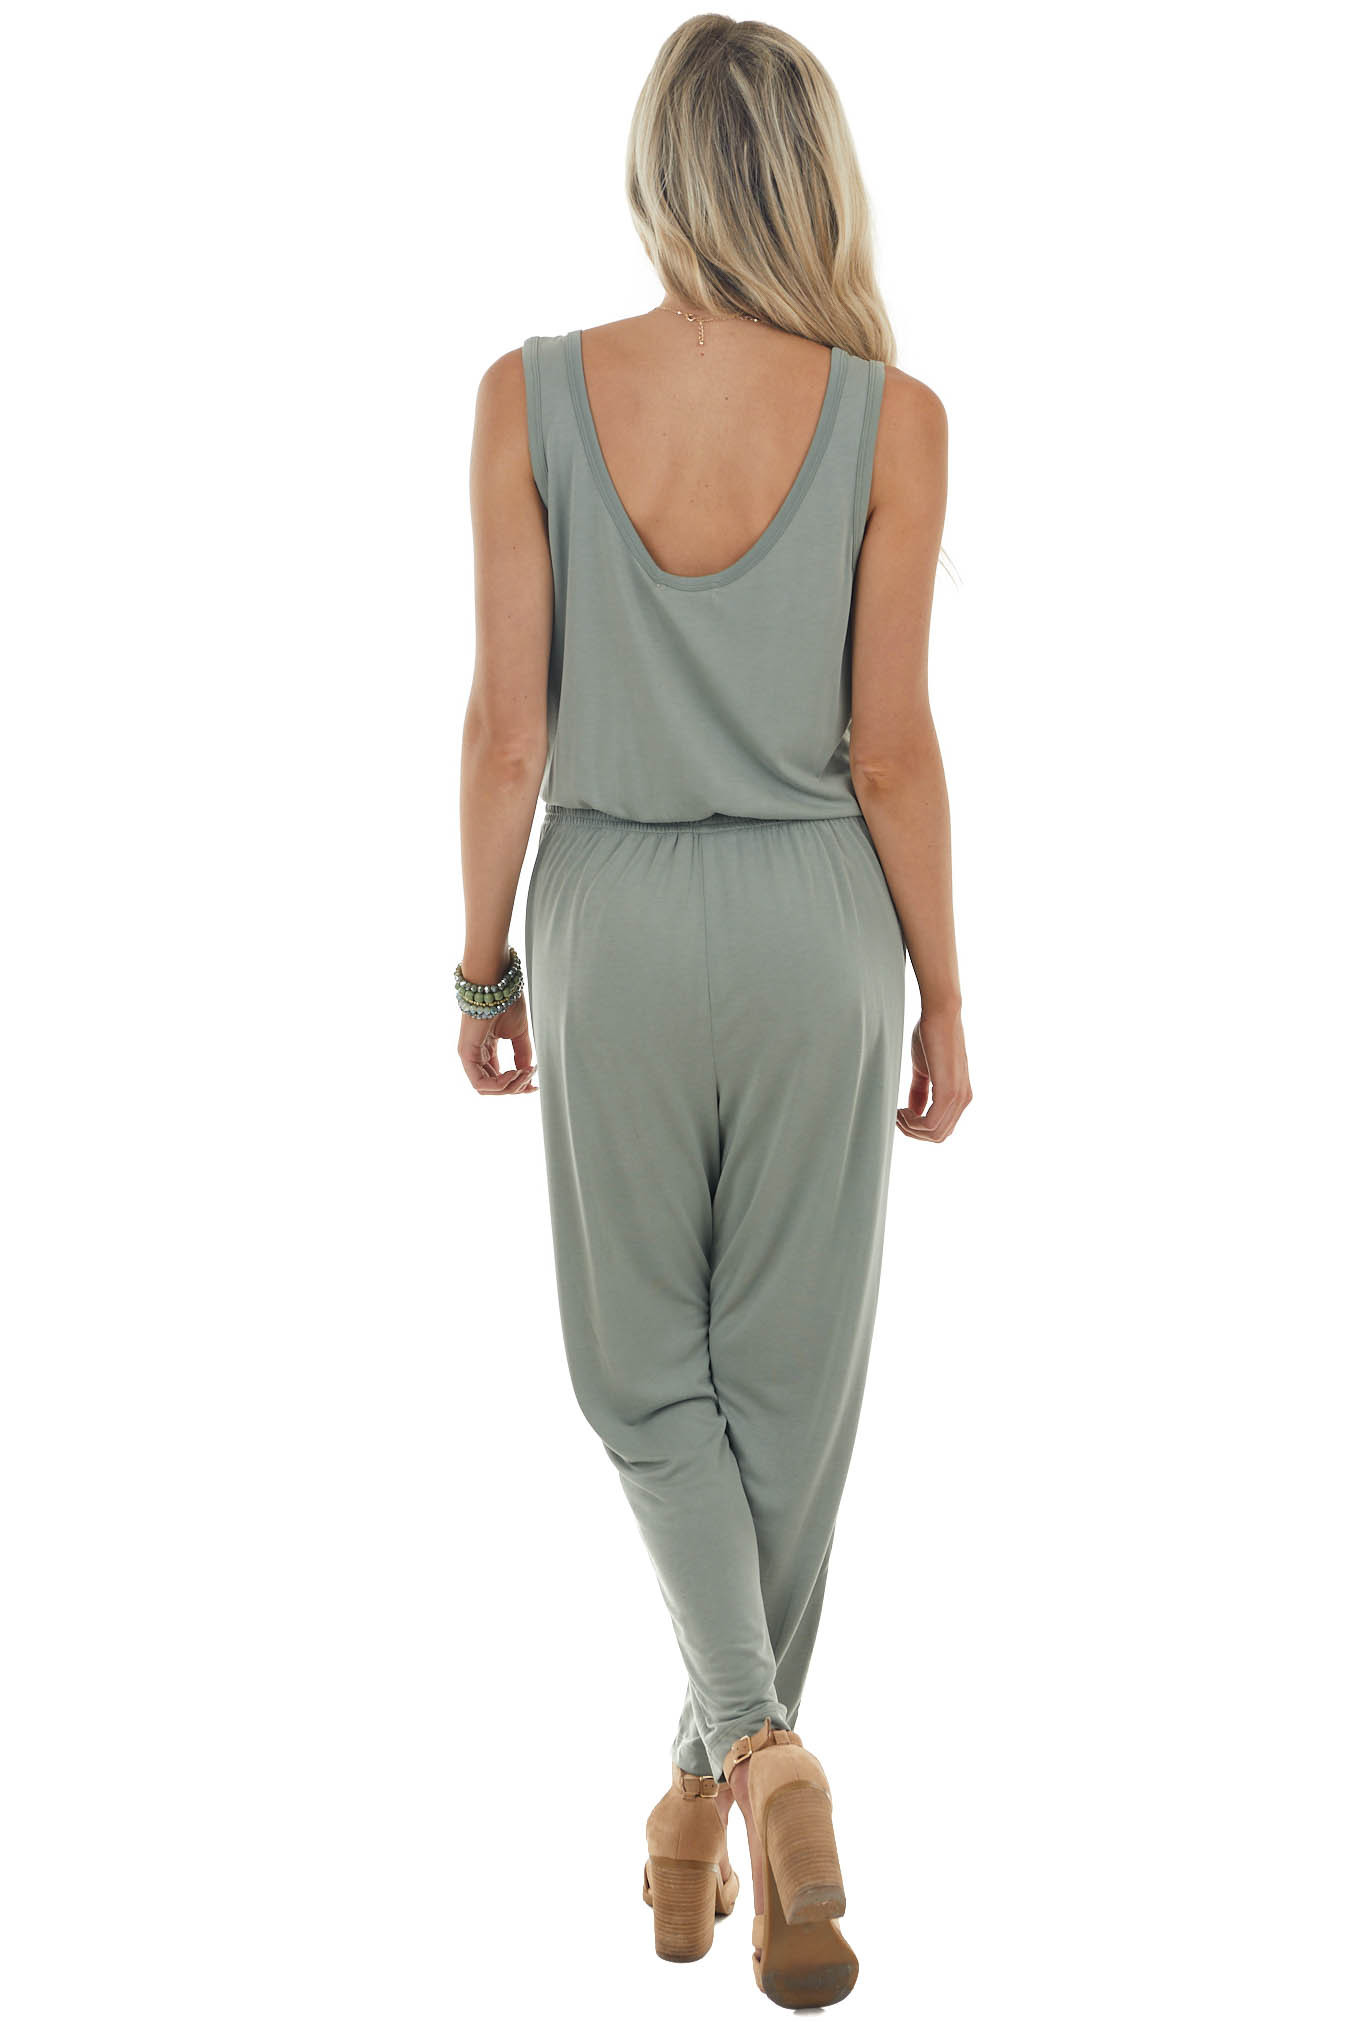 Juniper Sleeveless Stretchy Knit Jumpsuit with Waist Tie